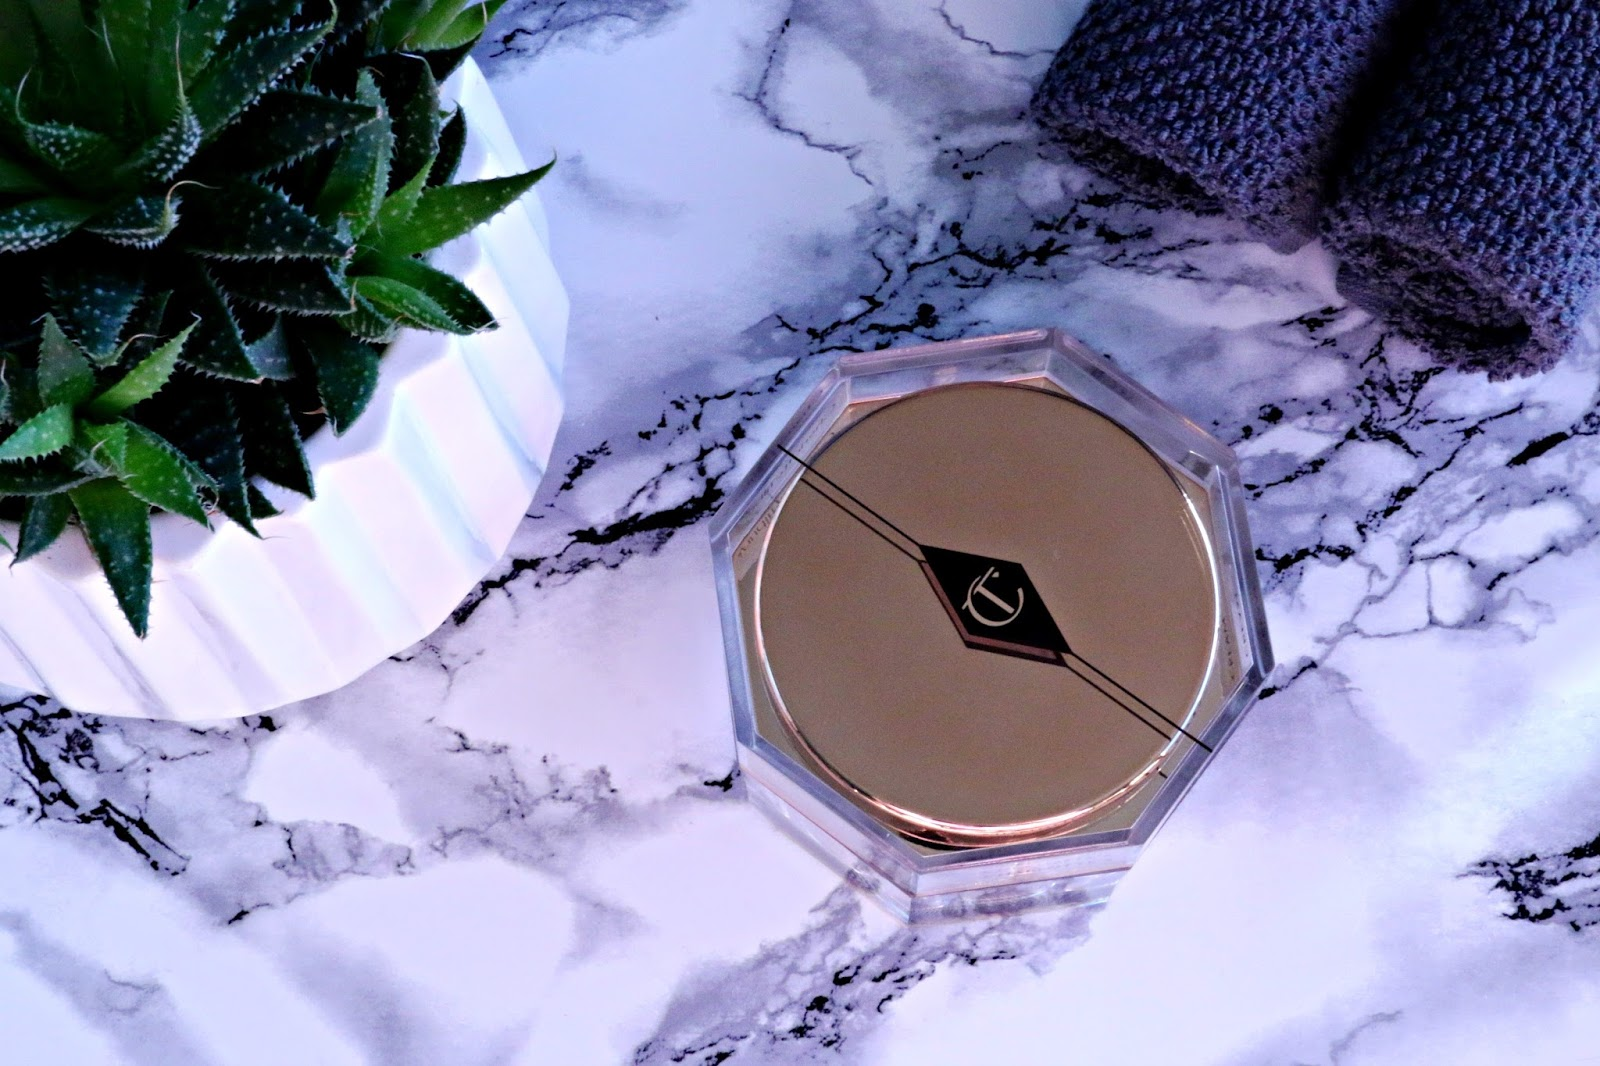 Charlotte Tilbury Magic Cream Review: Is This Moisturiser Suitable For Oily Skin?